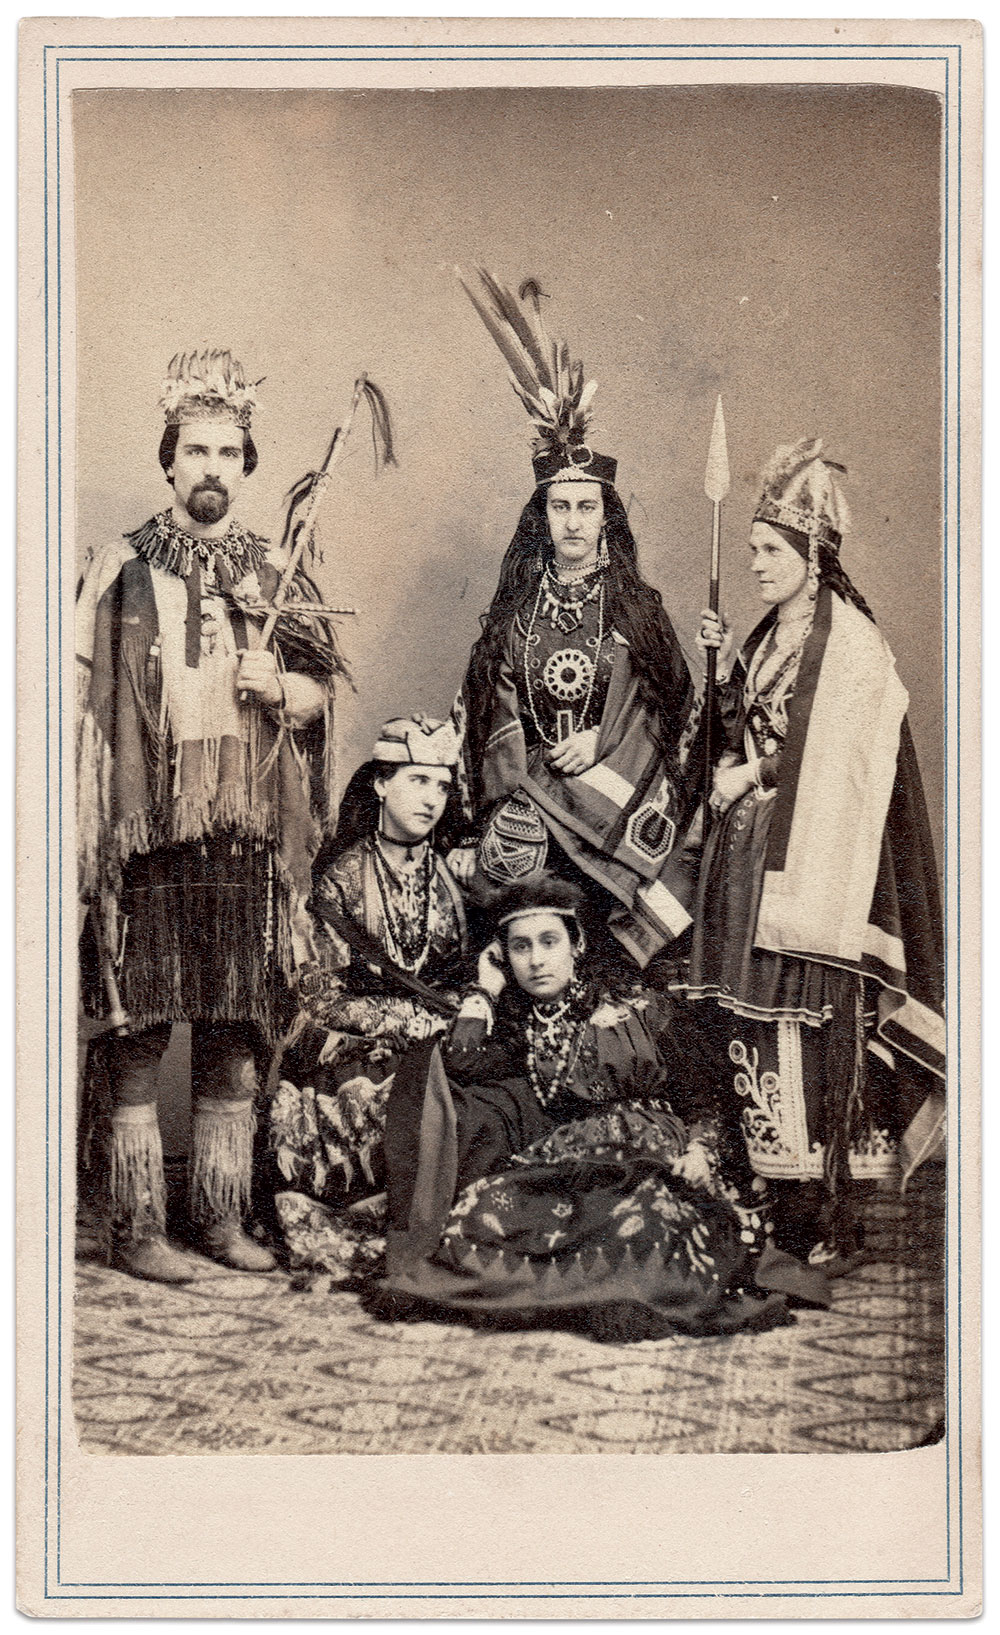 Costumes were popular, as evidenced by this group.  e beads, tomahawk, spear and other items suggest they occupied a booth dedicated to Native Americans at the Albany, N.Y., fair. Carte de visite by J.H. Abbott of Albany, N.Y. Author's Collection.